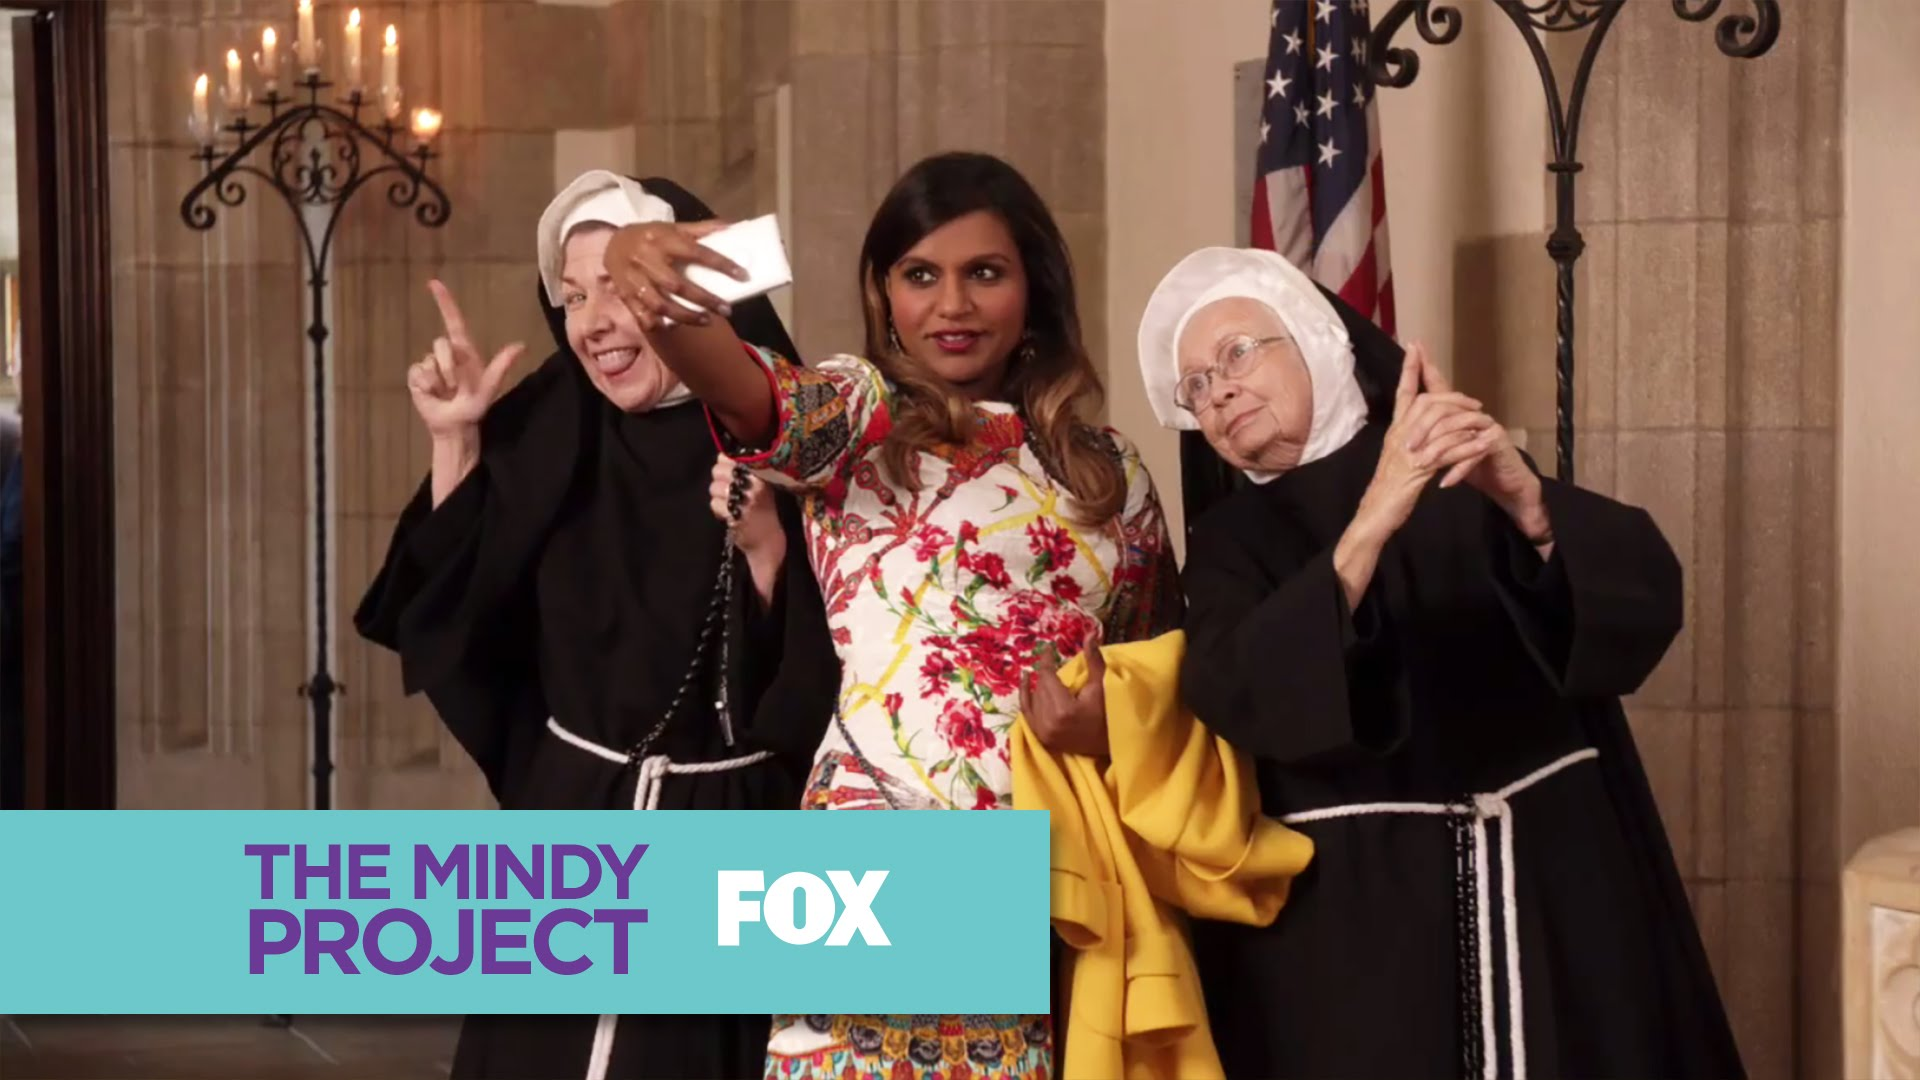 The Mindy Project Has Been Cancelled By Fox